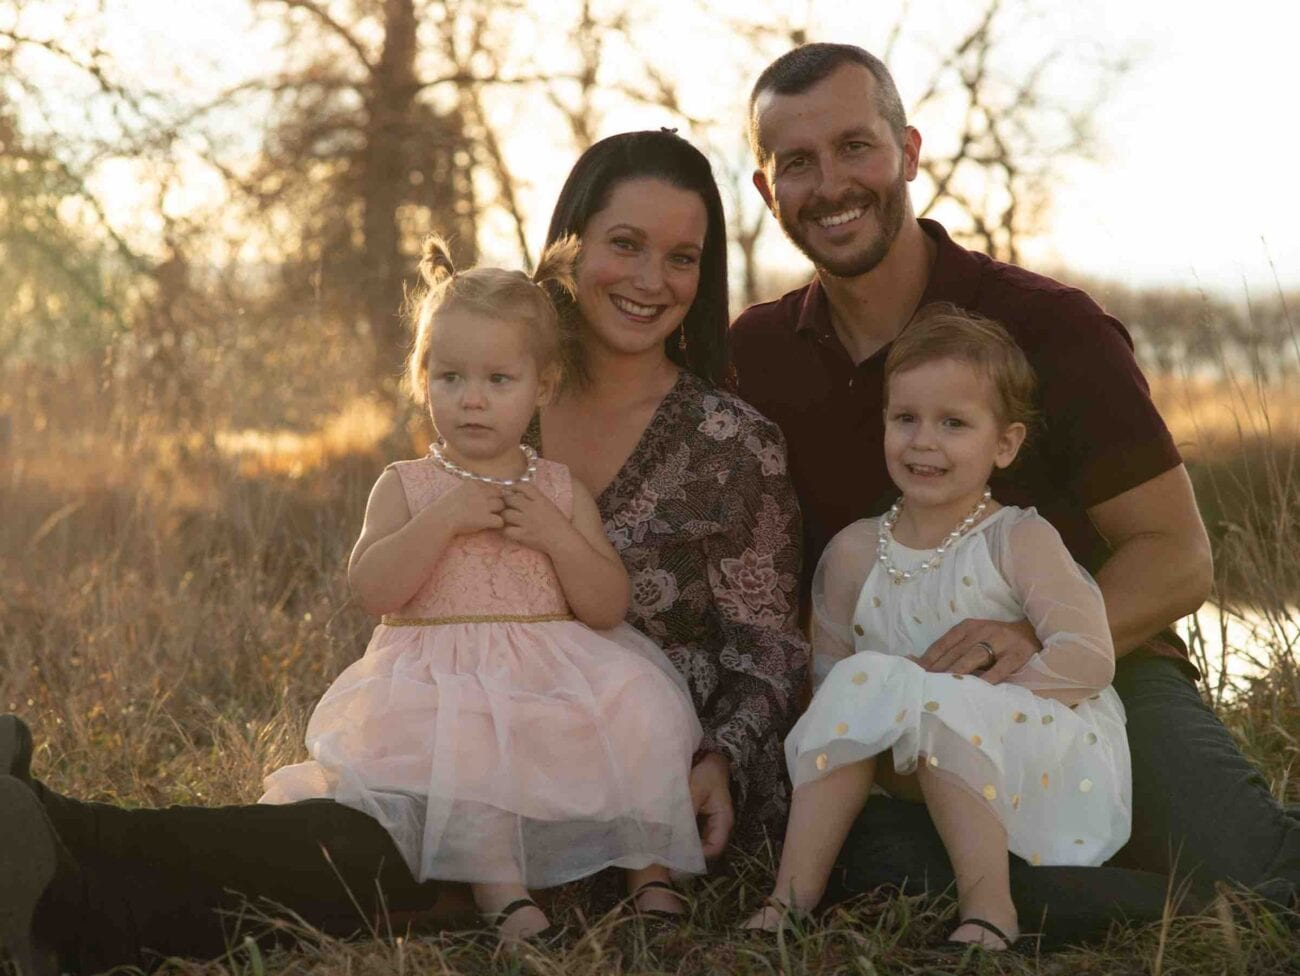 Netflix released the trailer for their true crime movie focused on Chris Watts, 'American Murder: The Family Next Door'. Check it out.